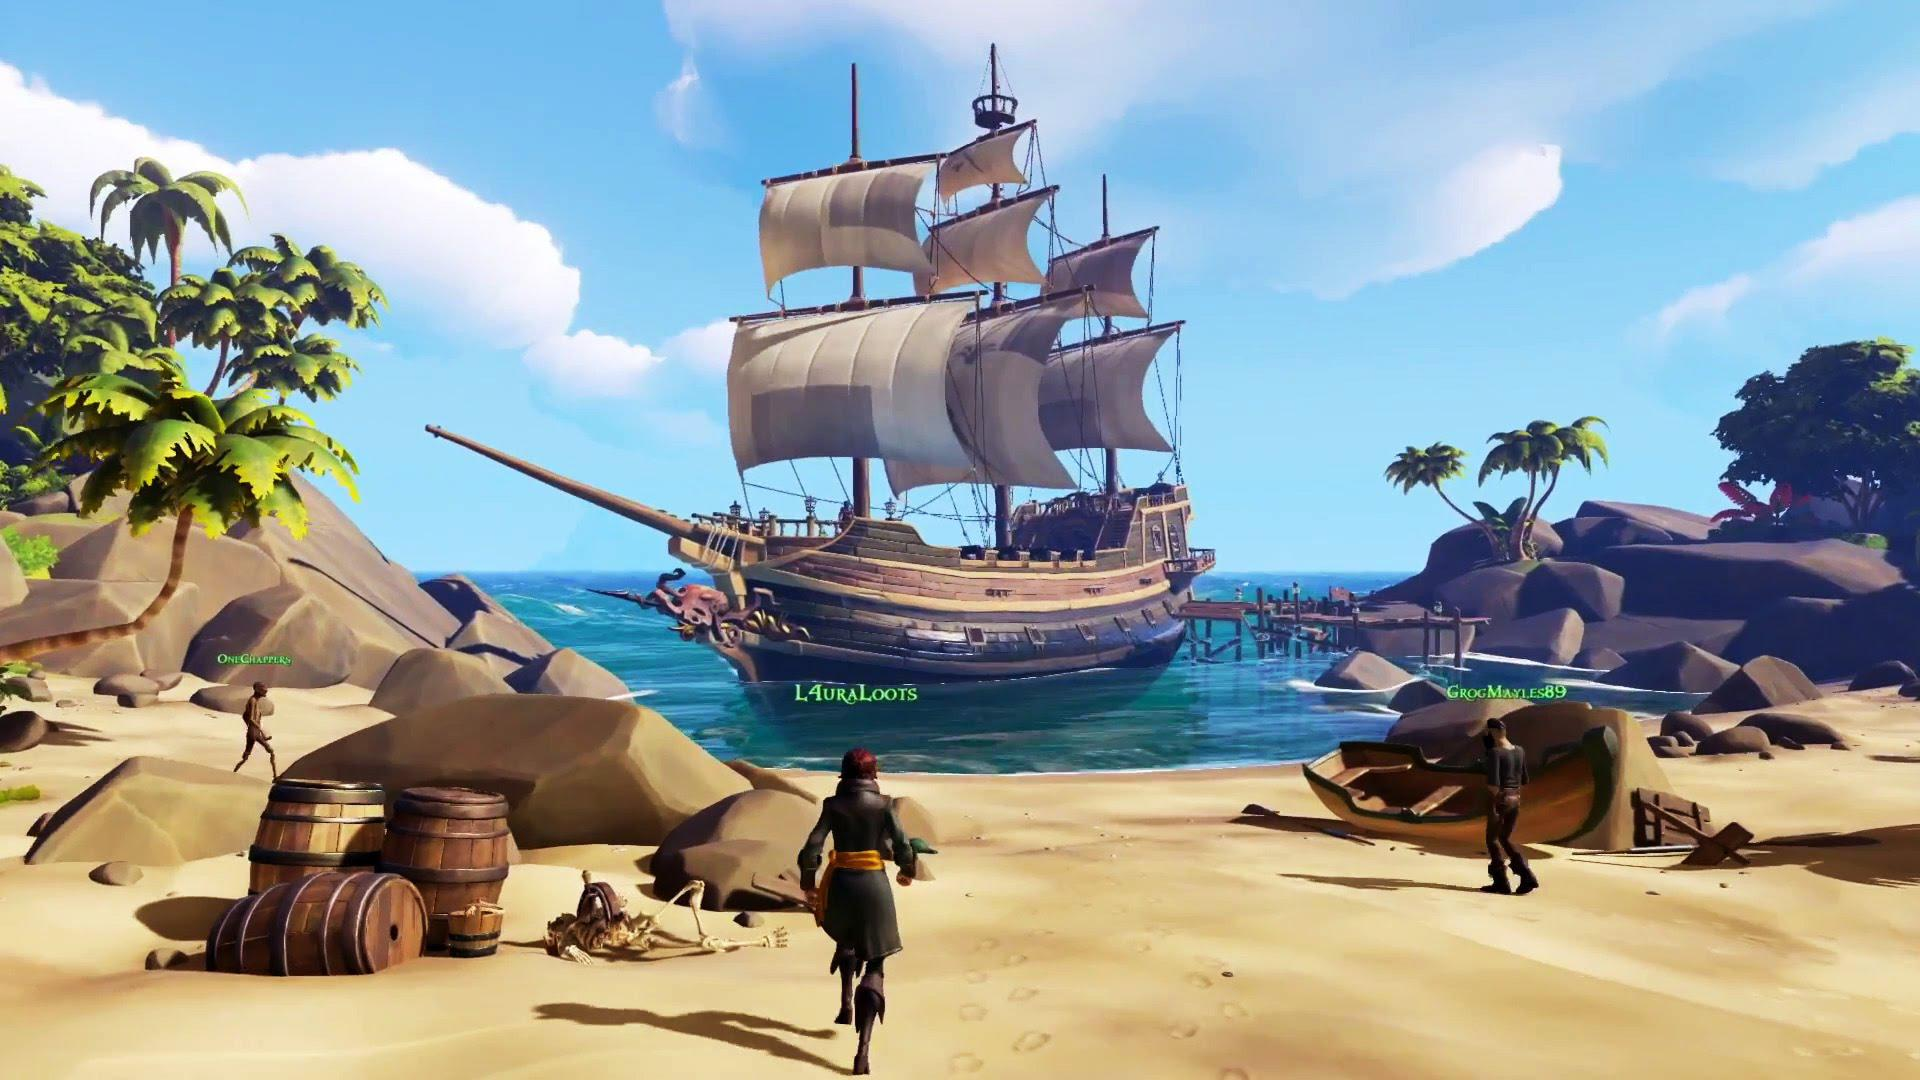 Rare, the team behind GoldenEye and Perfect Dark, will hope Sea of Thieves is a hit with gamers